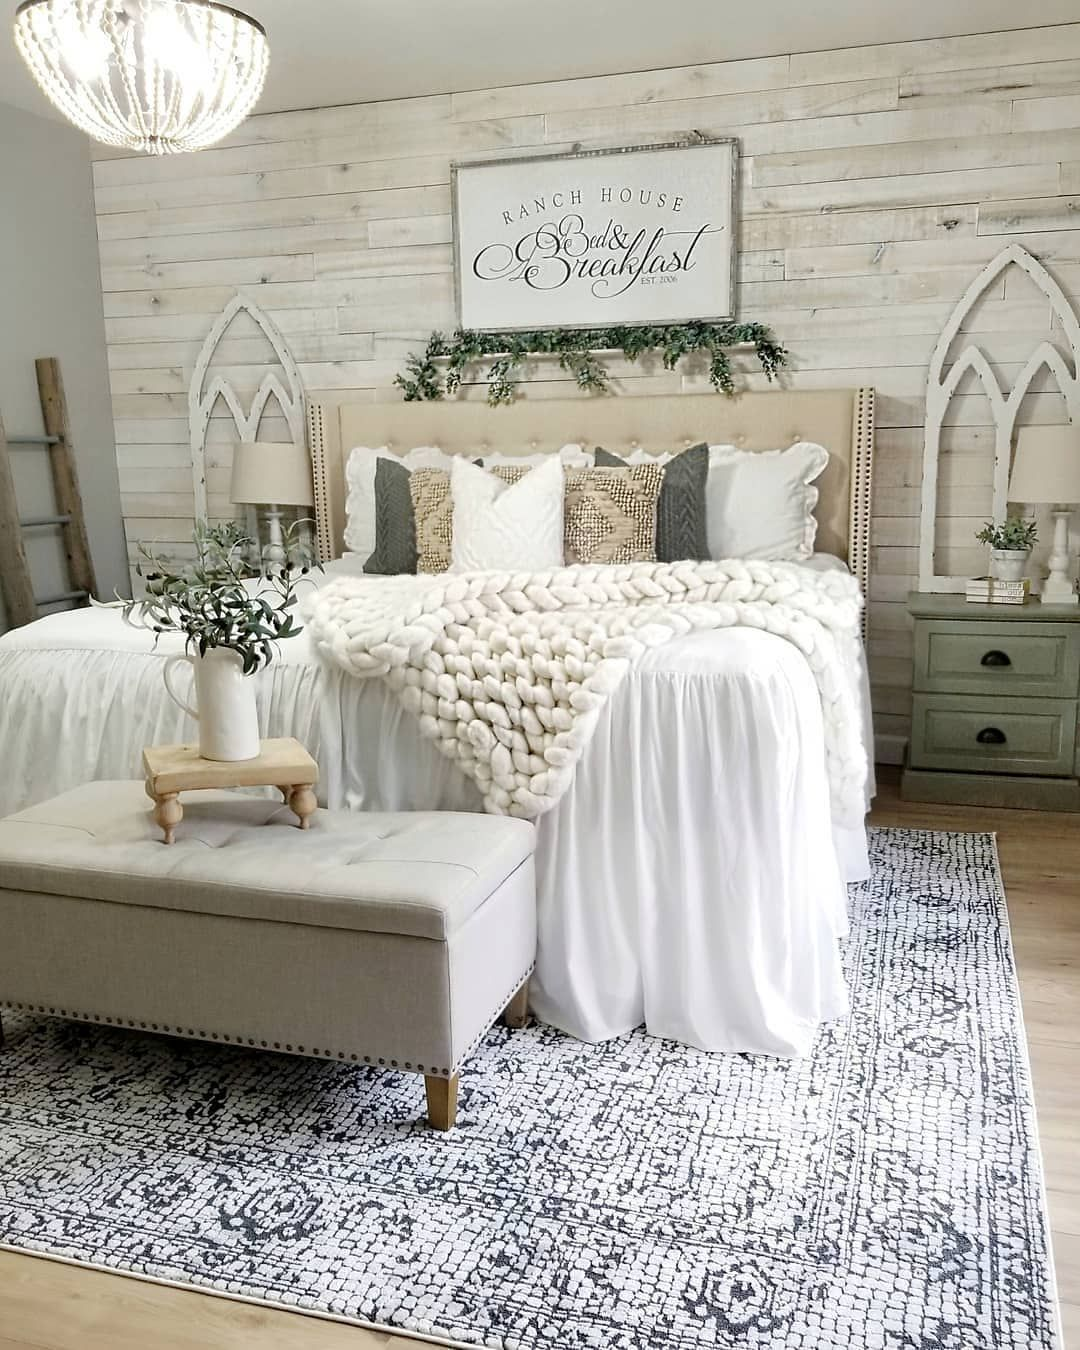 Farmhouse Homes On Instagram This Farmhouse Bedroom Looks So